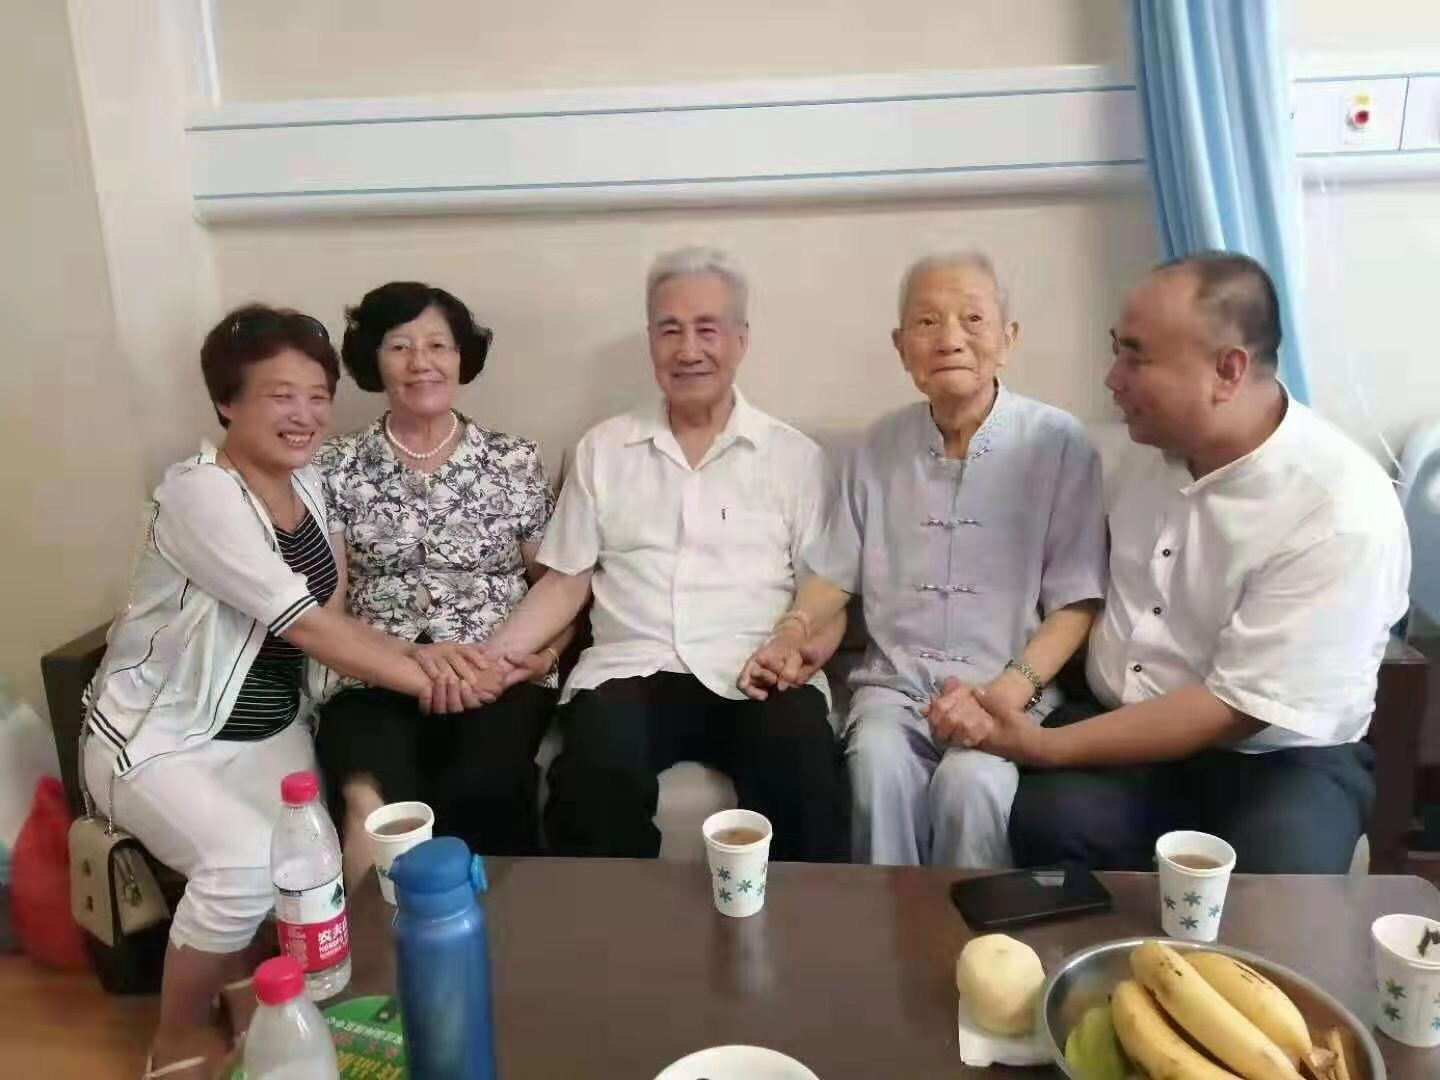 From right to left: Master Ma Chengjie, Master Cao Hefang, Prof. Pang Heming, Master Sang Lisuo, Master Bian Xiumei